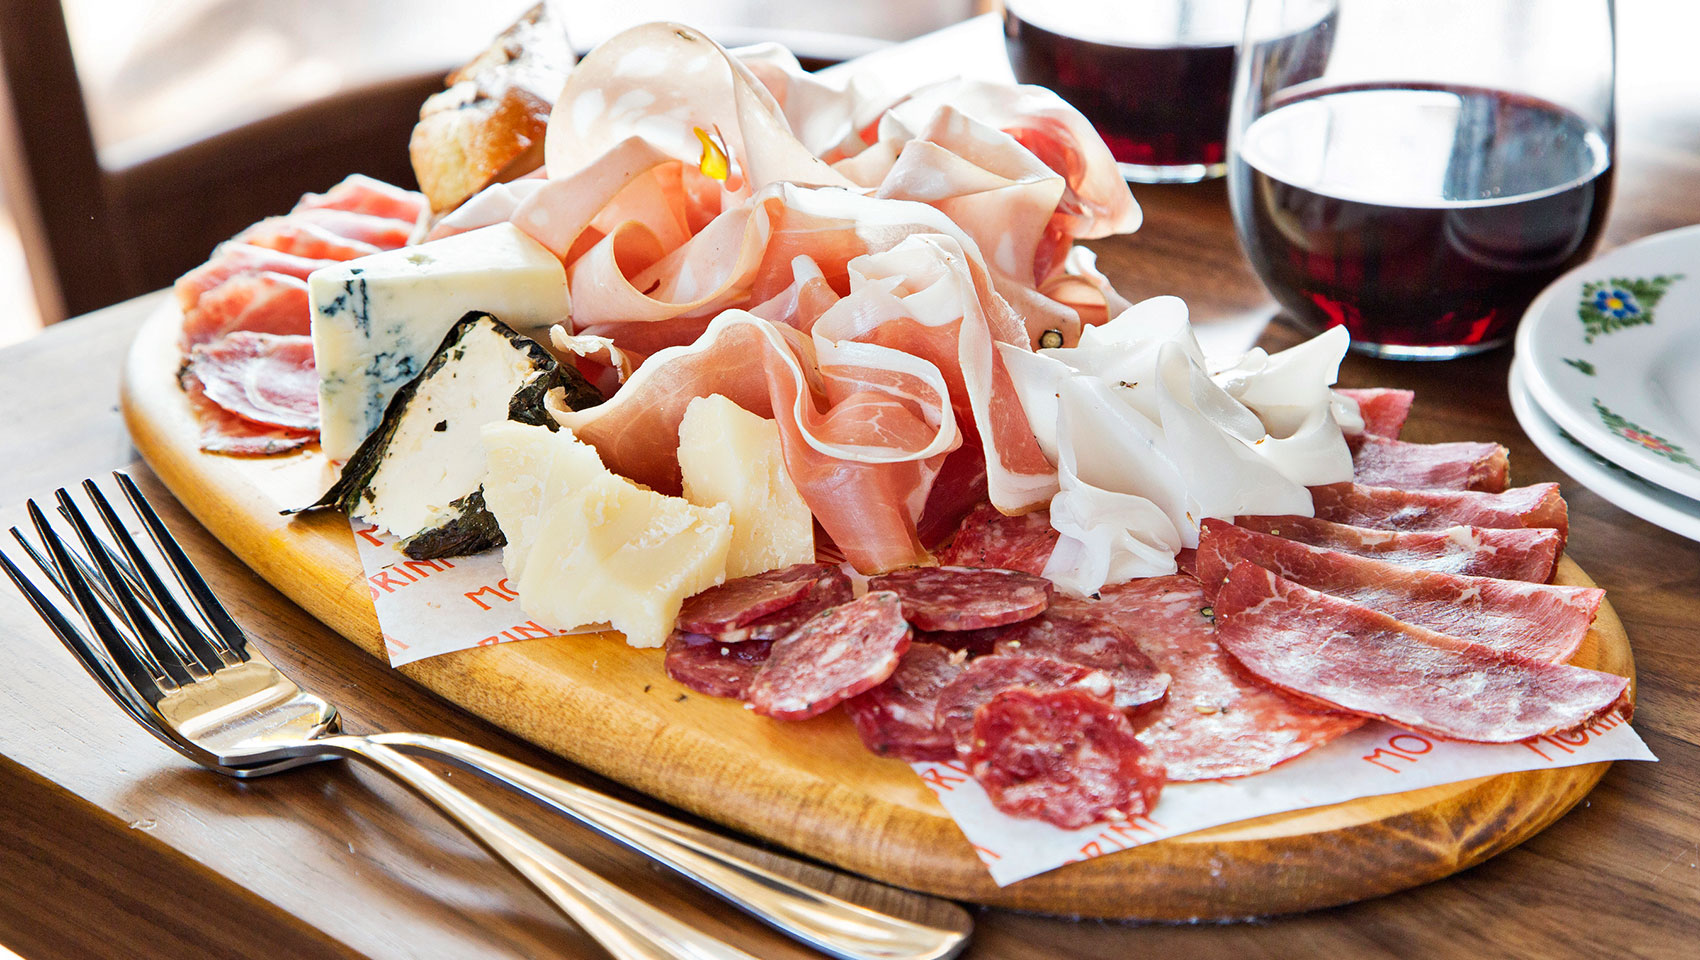 Cured Meat & Cheese Plate